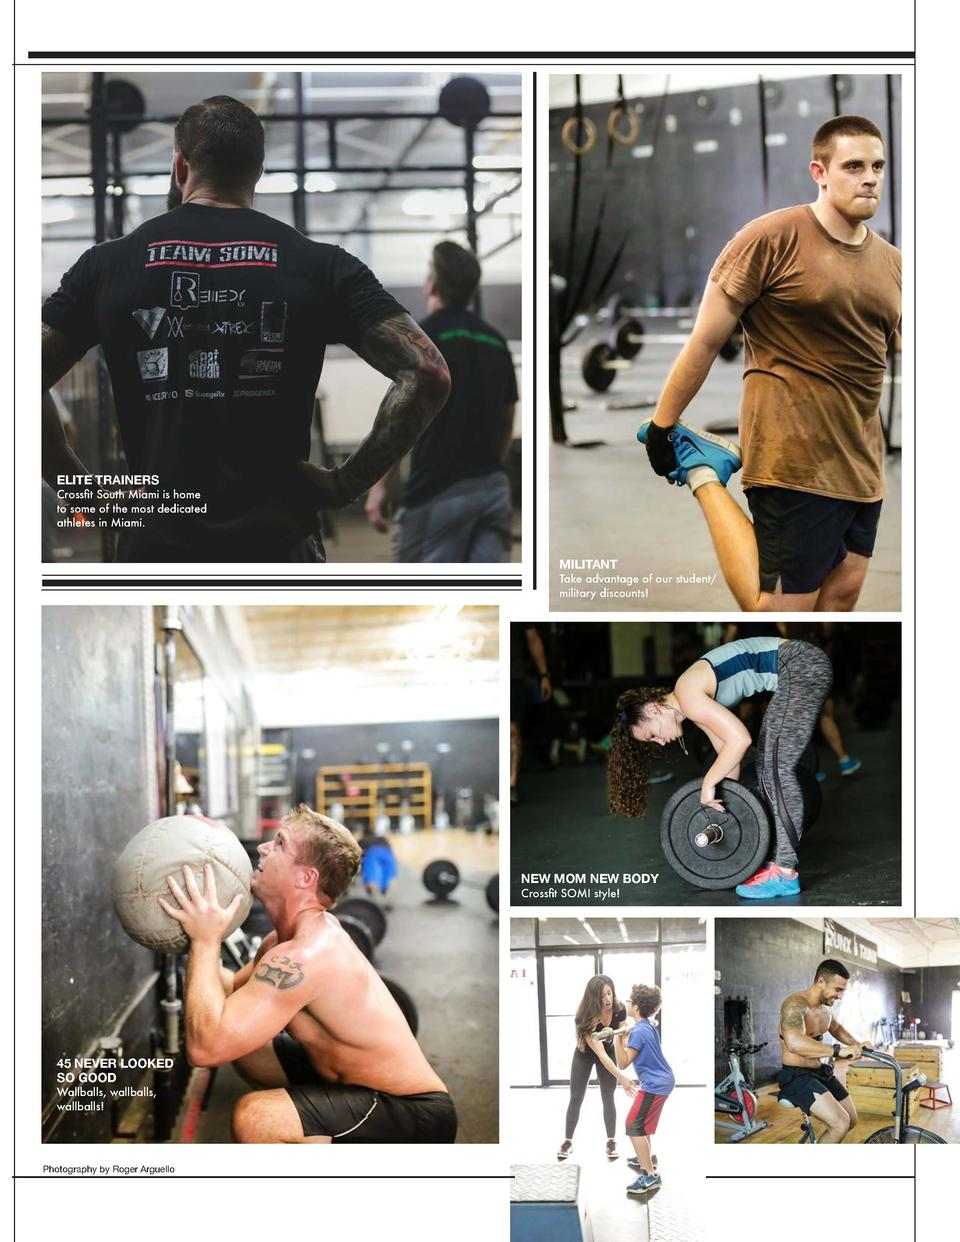 ELITE TRAINERS  Crossfit South Miami is home to some of the most dedicated athletes in Miami.  MILITANT  Take advantage of...